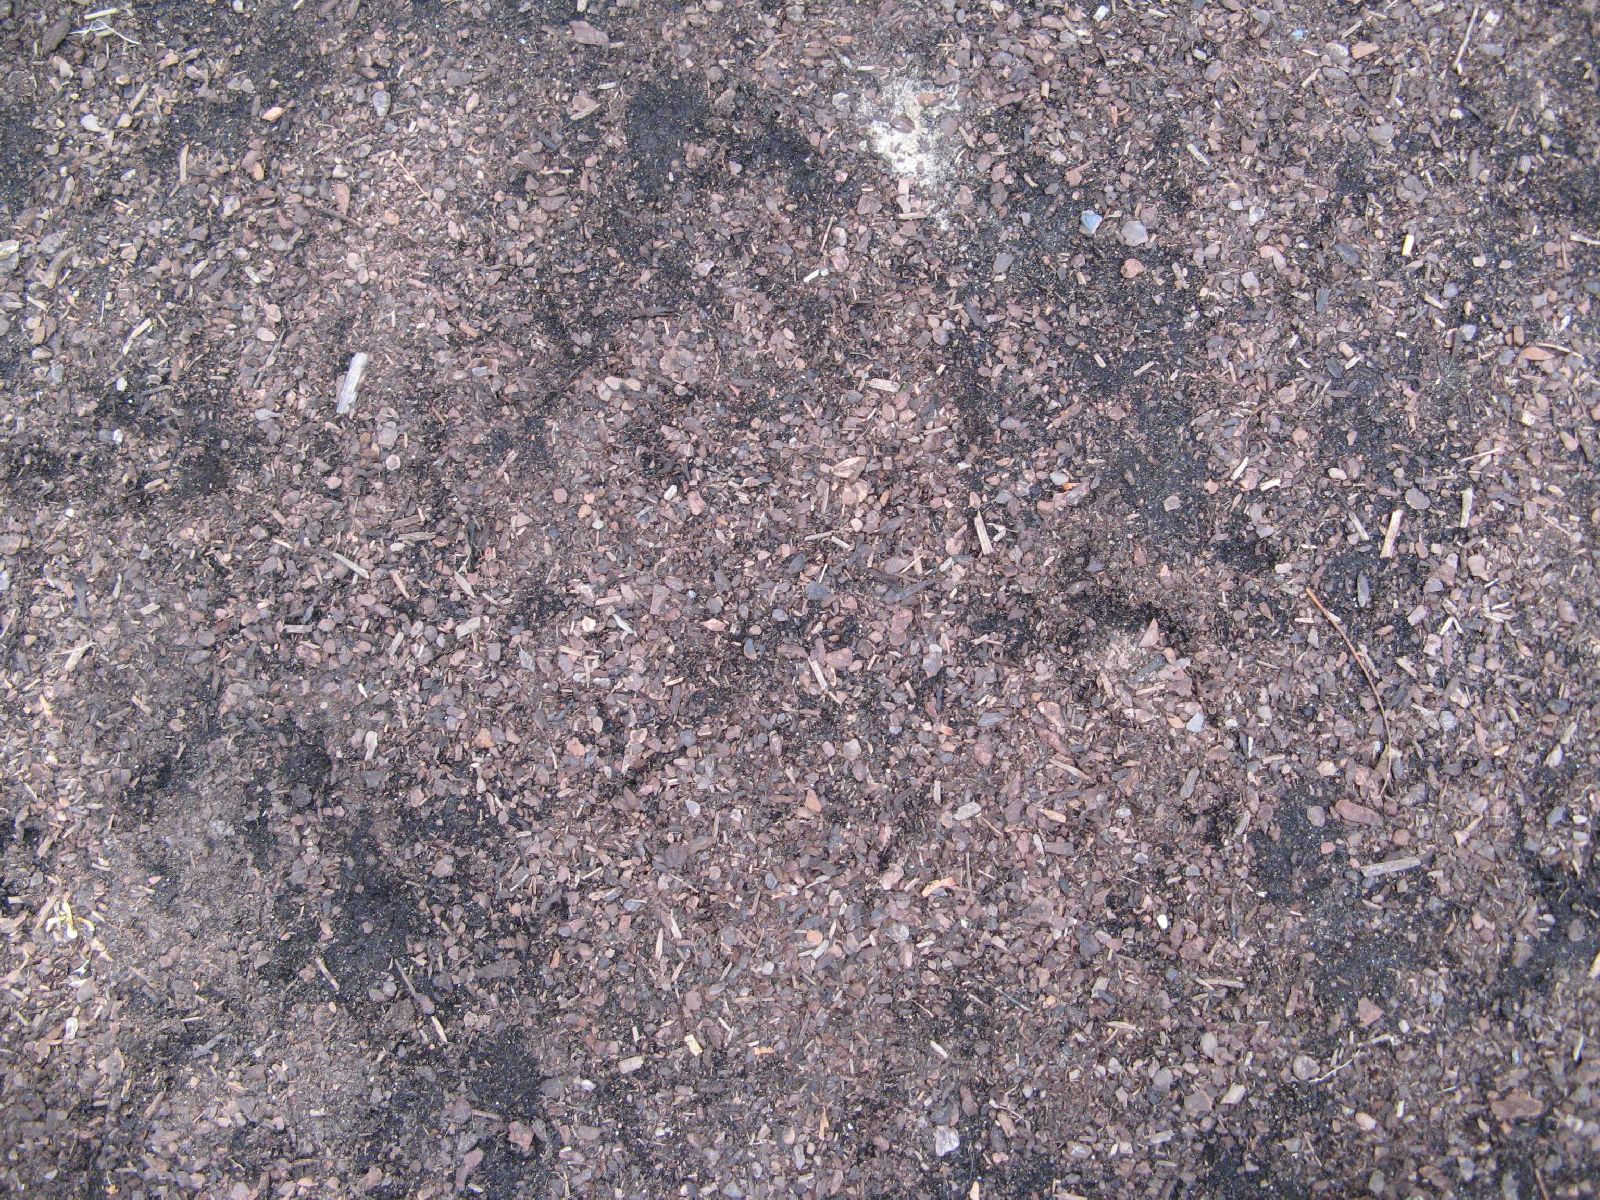 Ground-Nature_Texture_B_1092